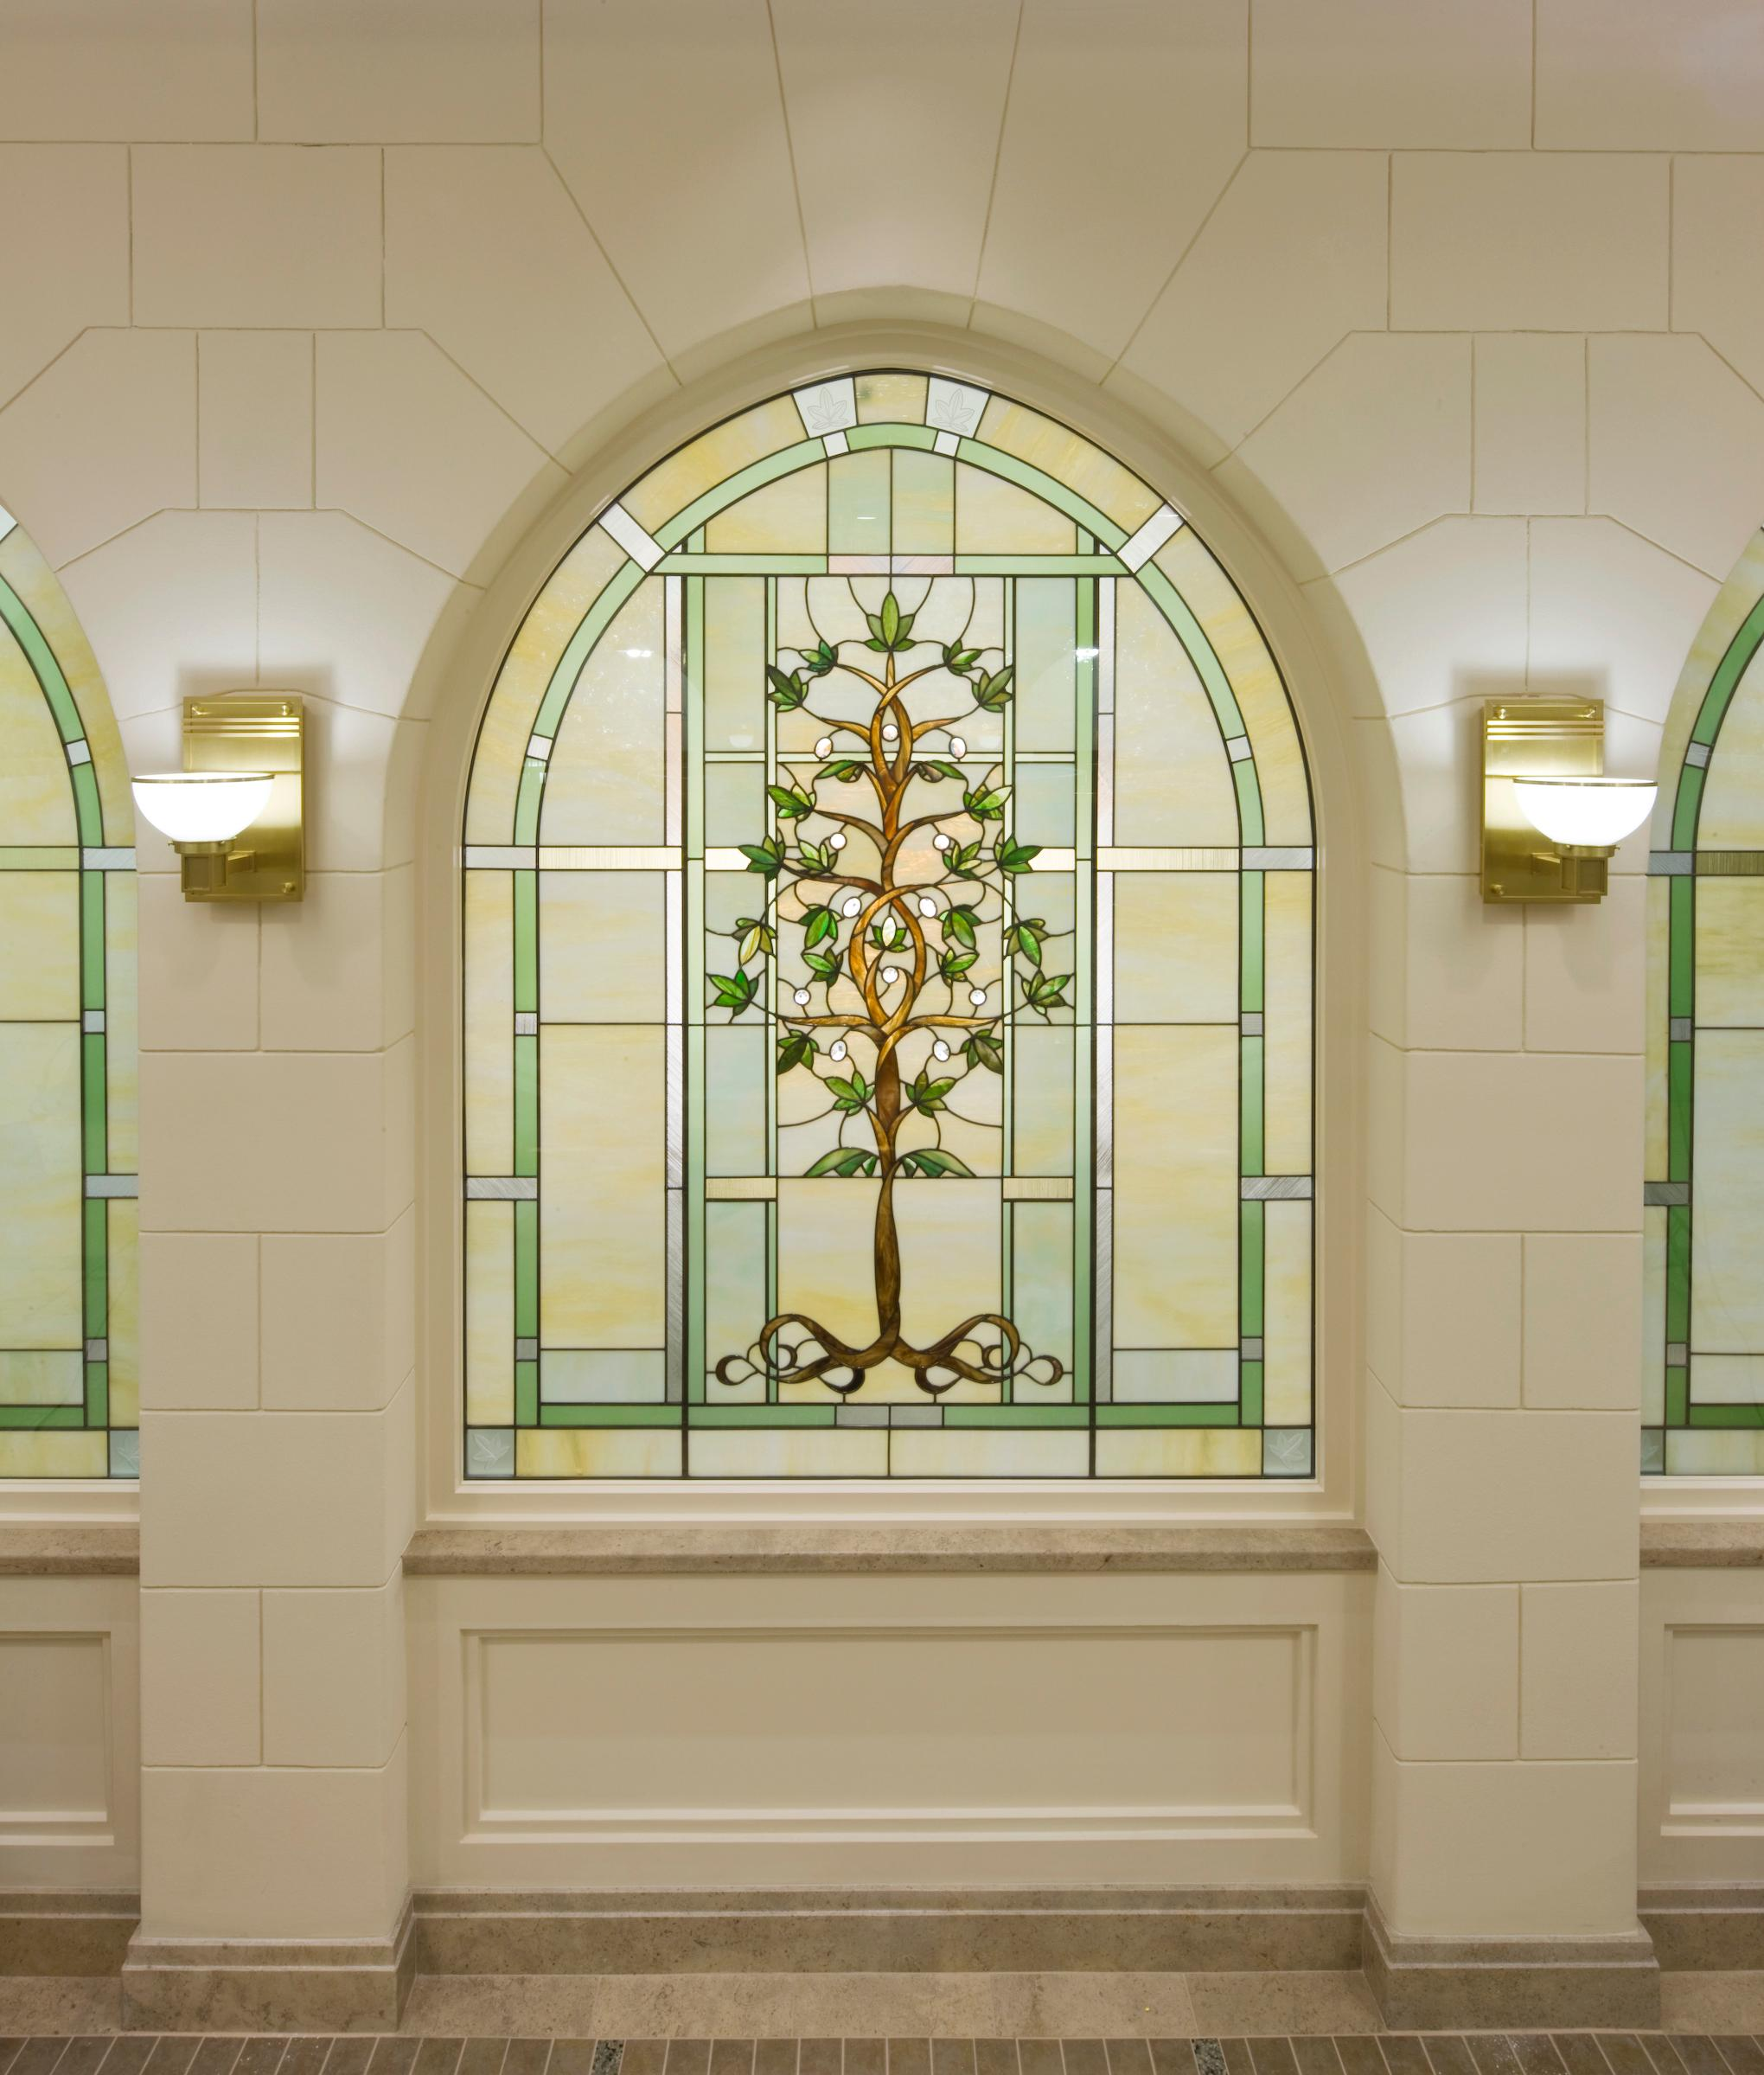 Holdman_Studios_Stained_Art_Glass_LDS_Mormon_Temple_Laie_Hawaii_Baptistry_Tree_of_Life_Closeup.jpg